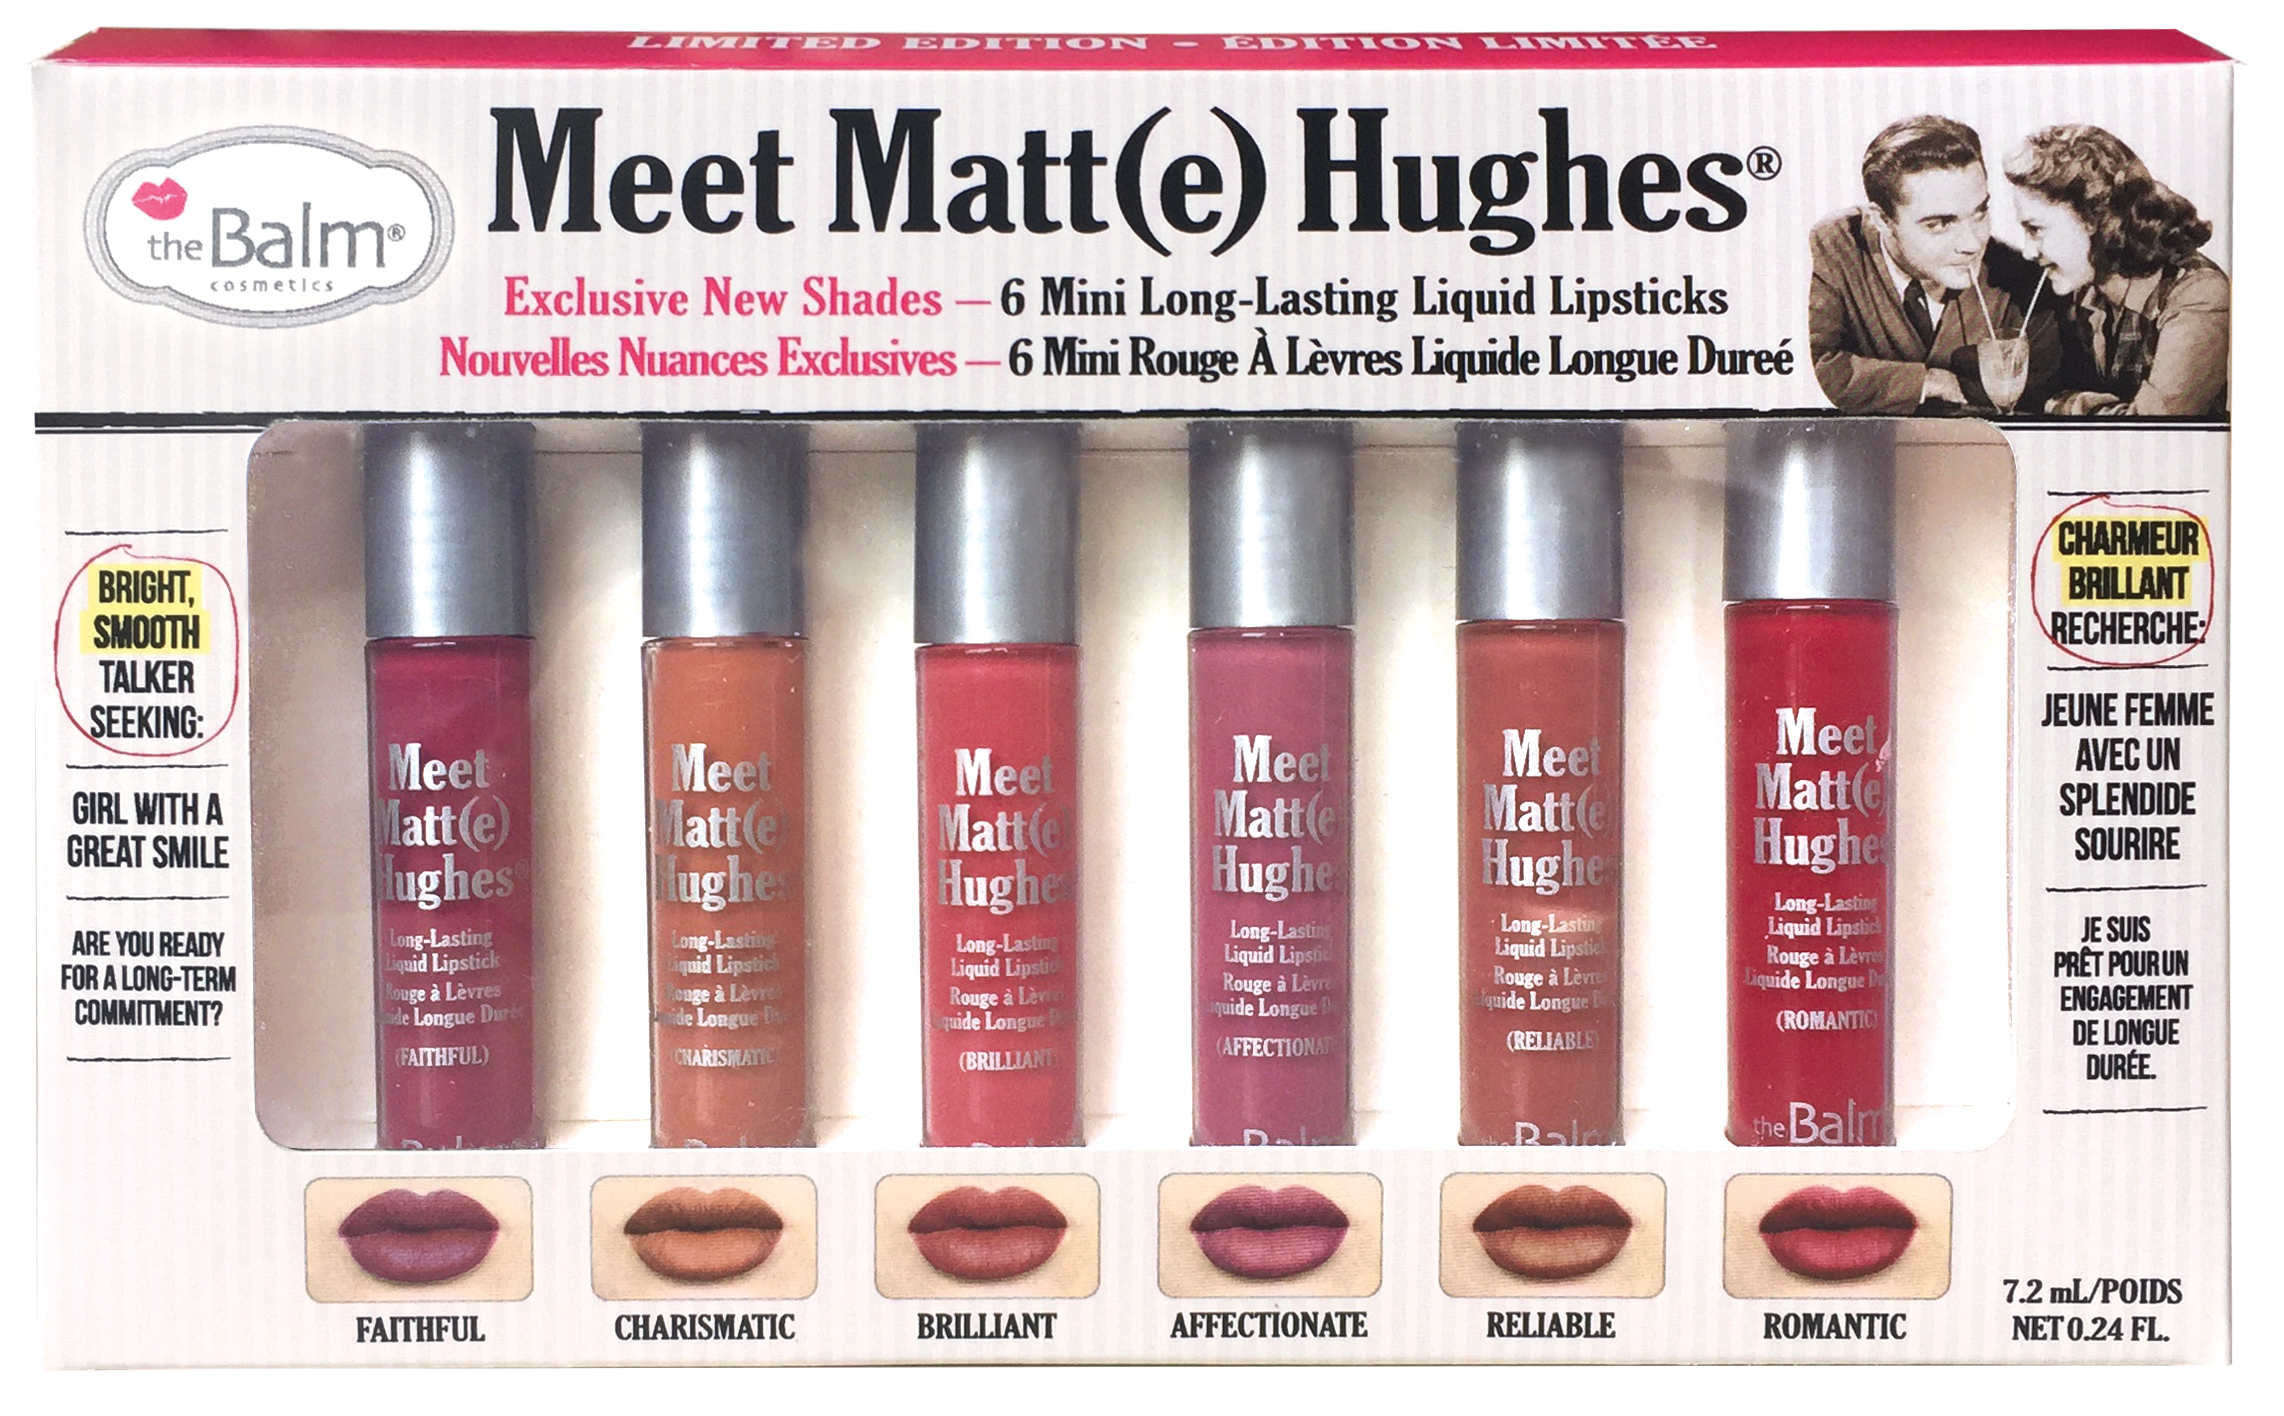 Meet Matte Hughes Vol. 2